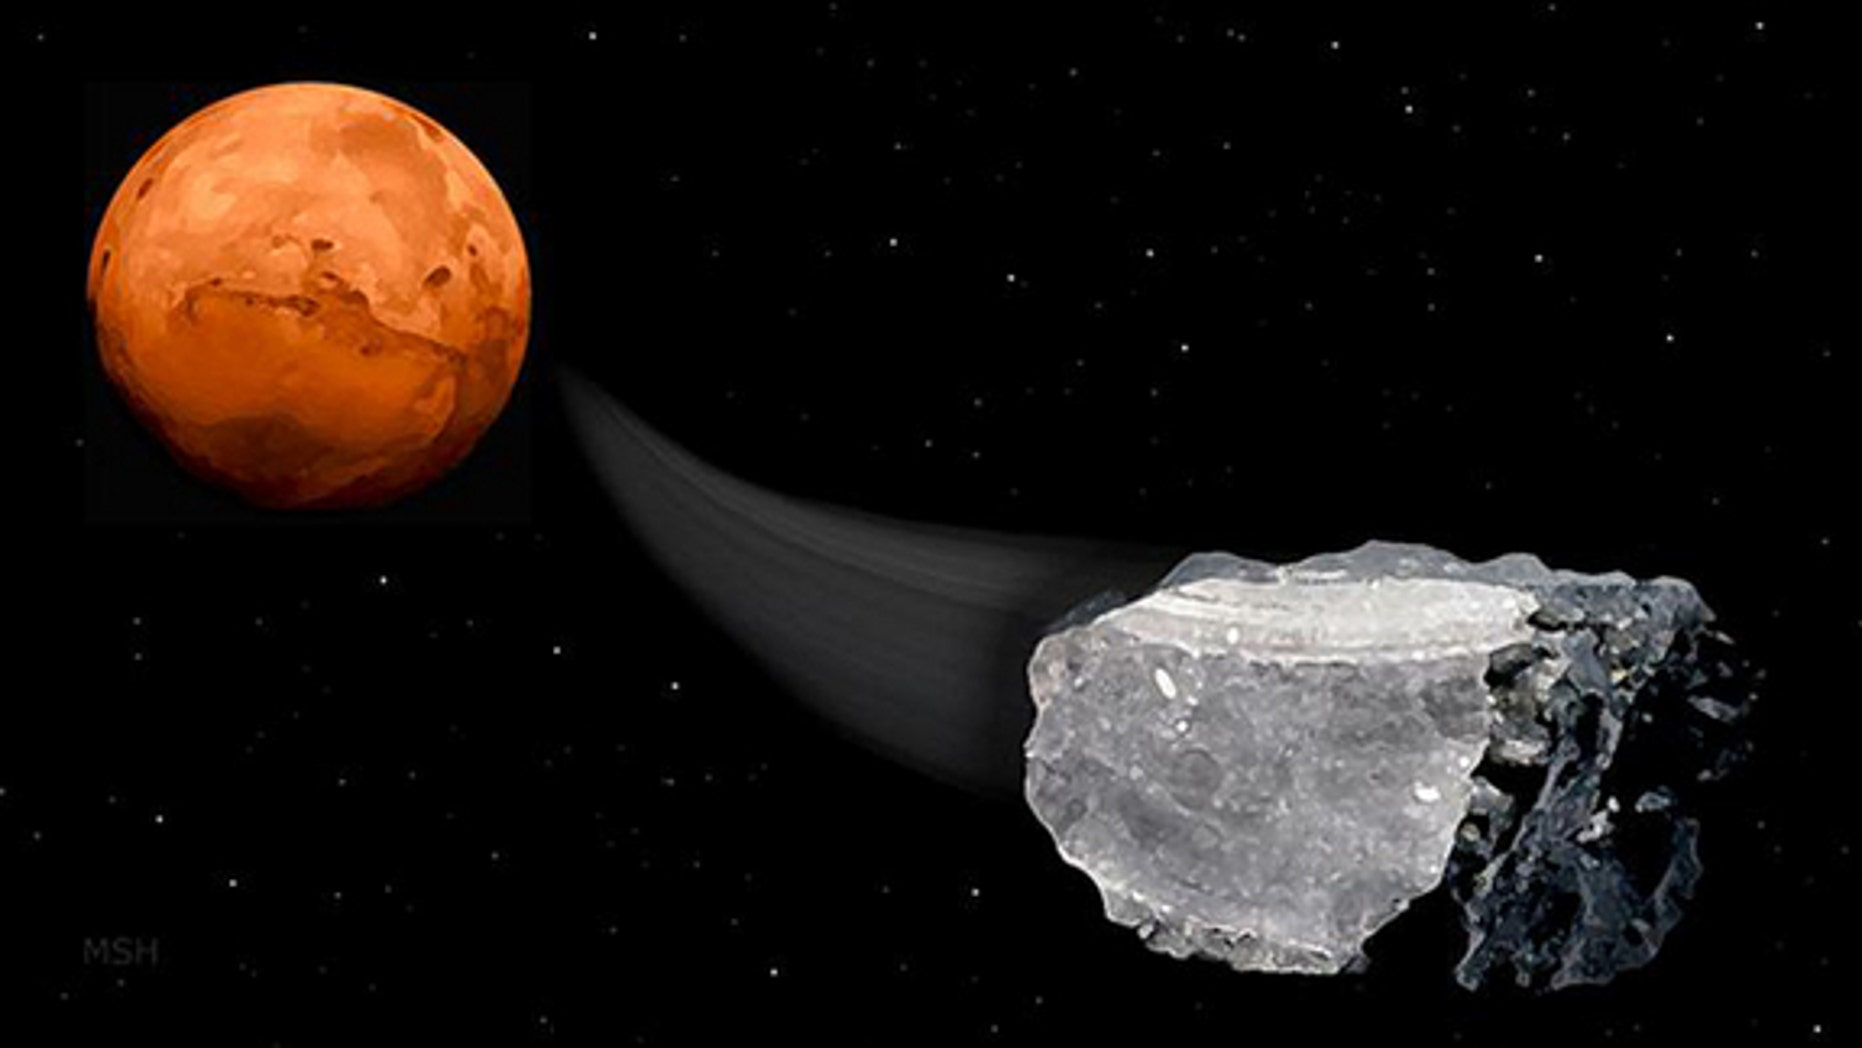 Meteorites from Mars found on Earth have traces of methane, adding weight to the idea that life could live off methane on the Red Planet, scientists say. But the methane detection alone is not proof that life exists on Mars now or in the past,